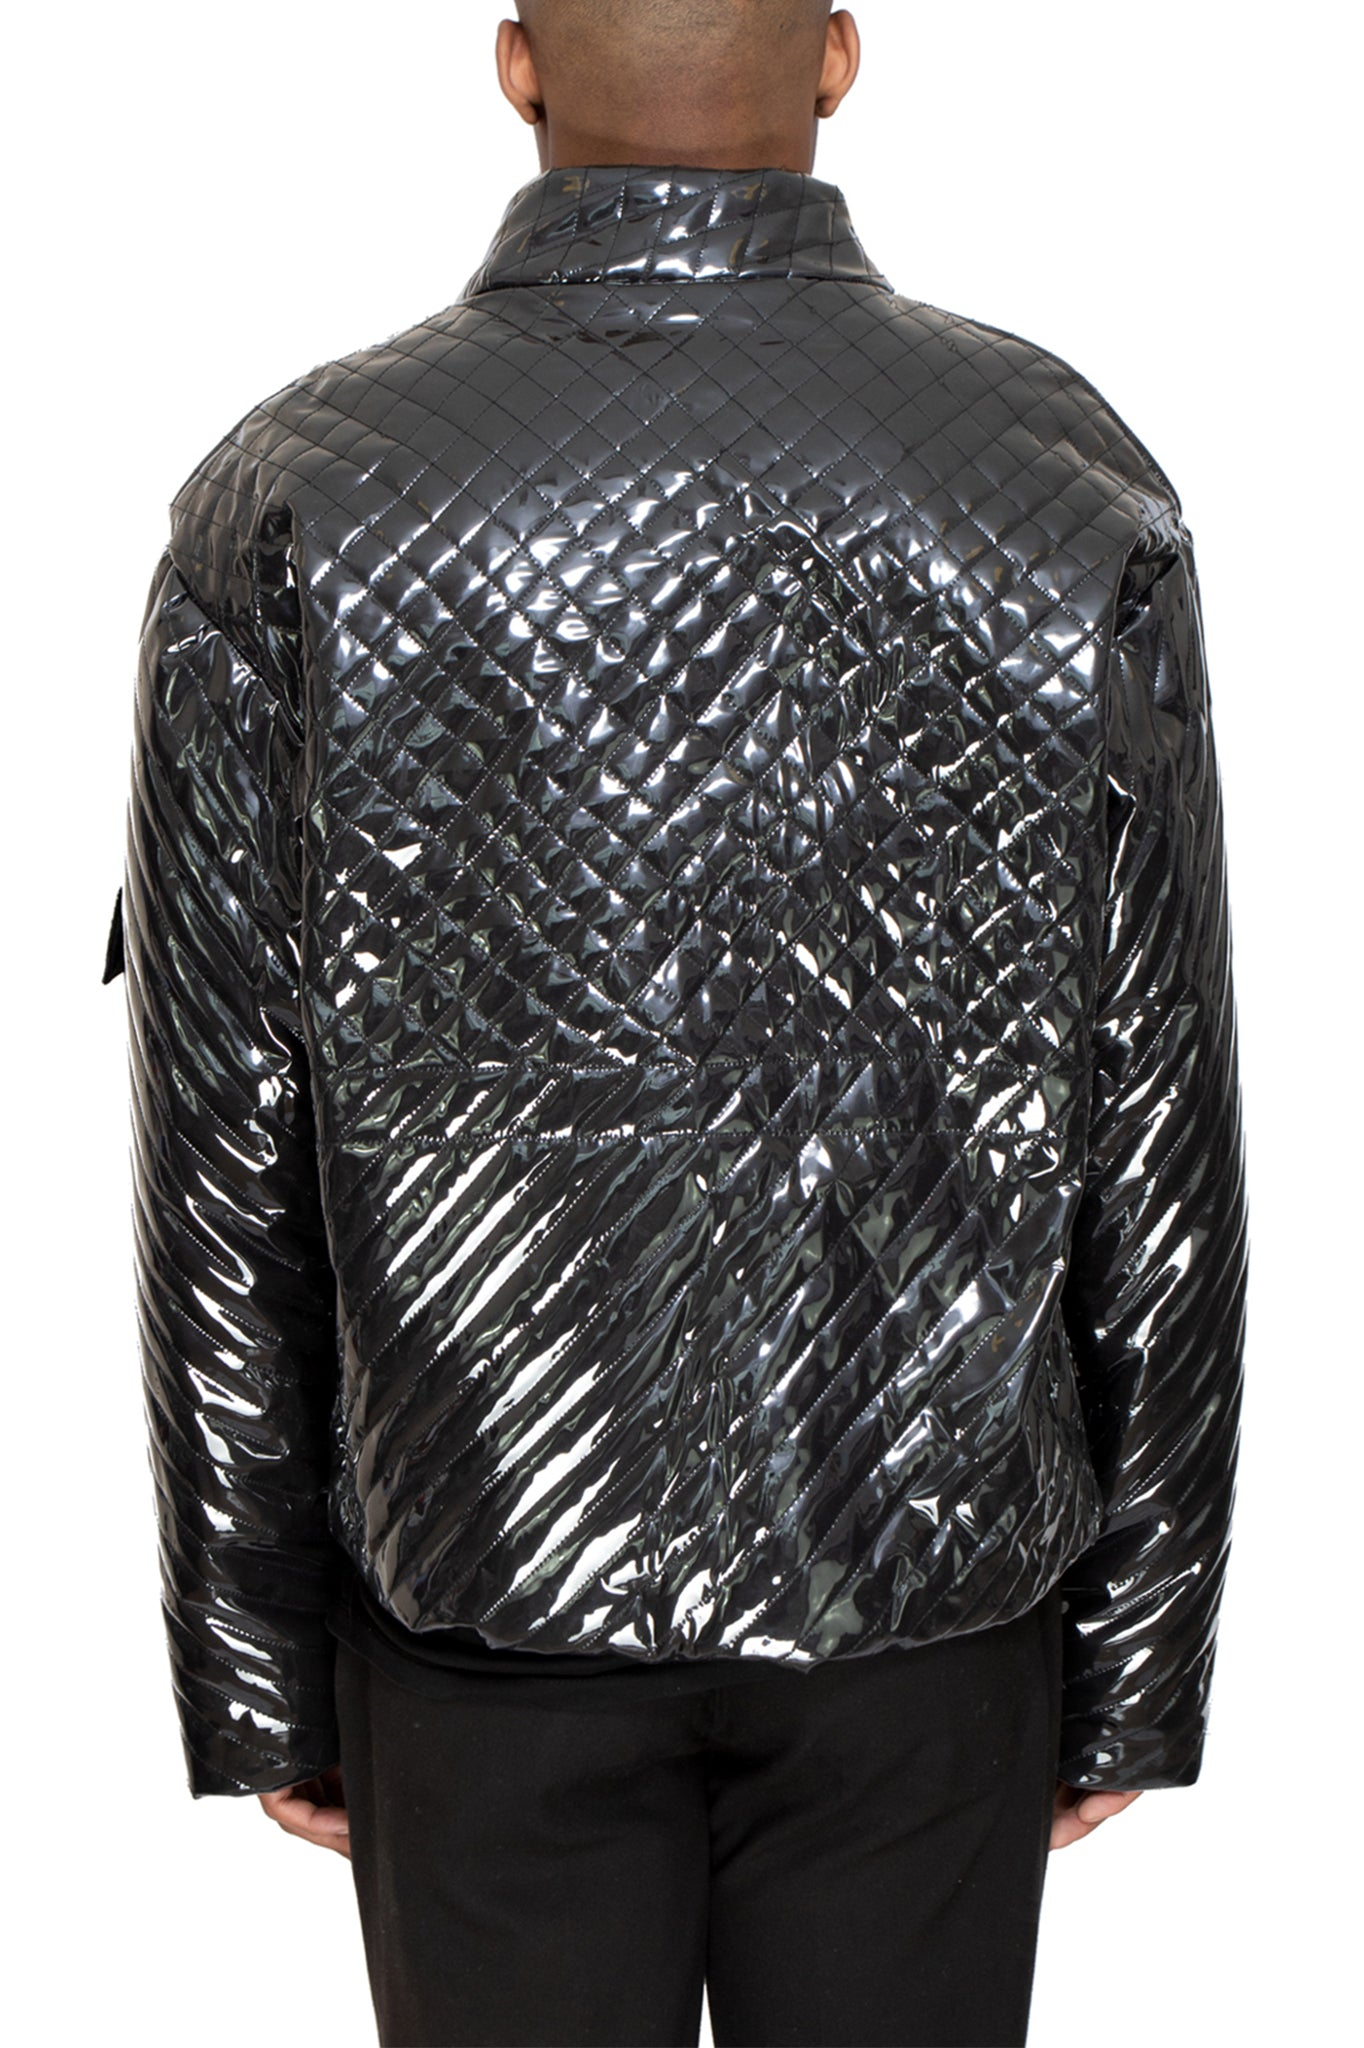 Raus Black PVC Jacket